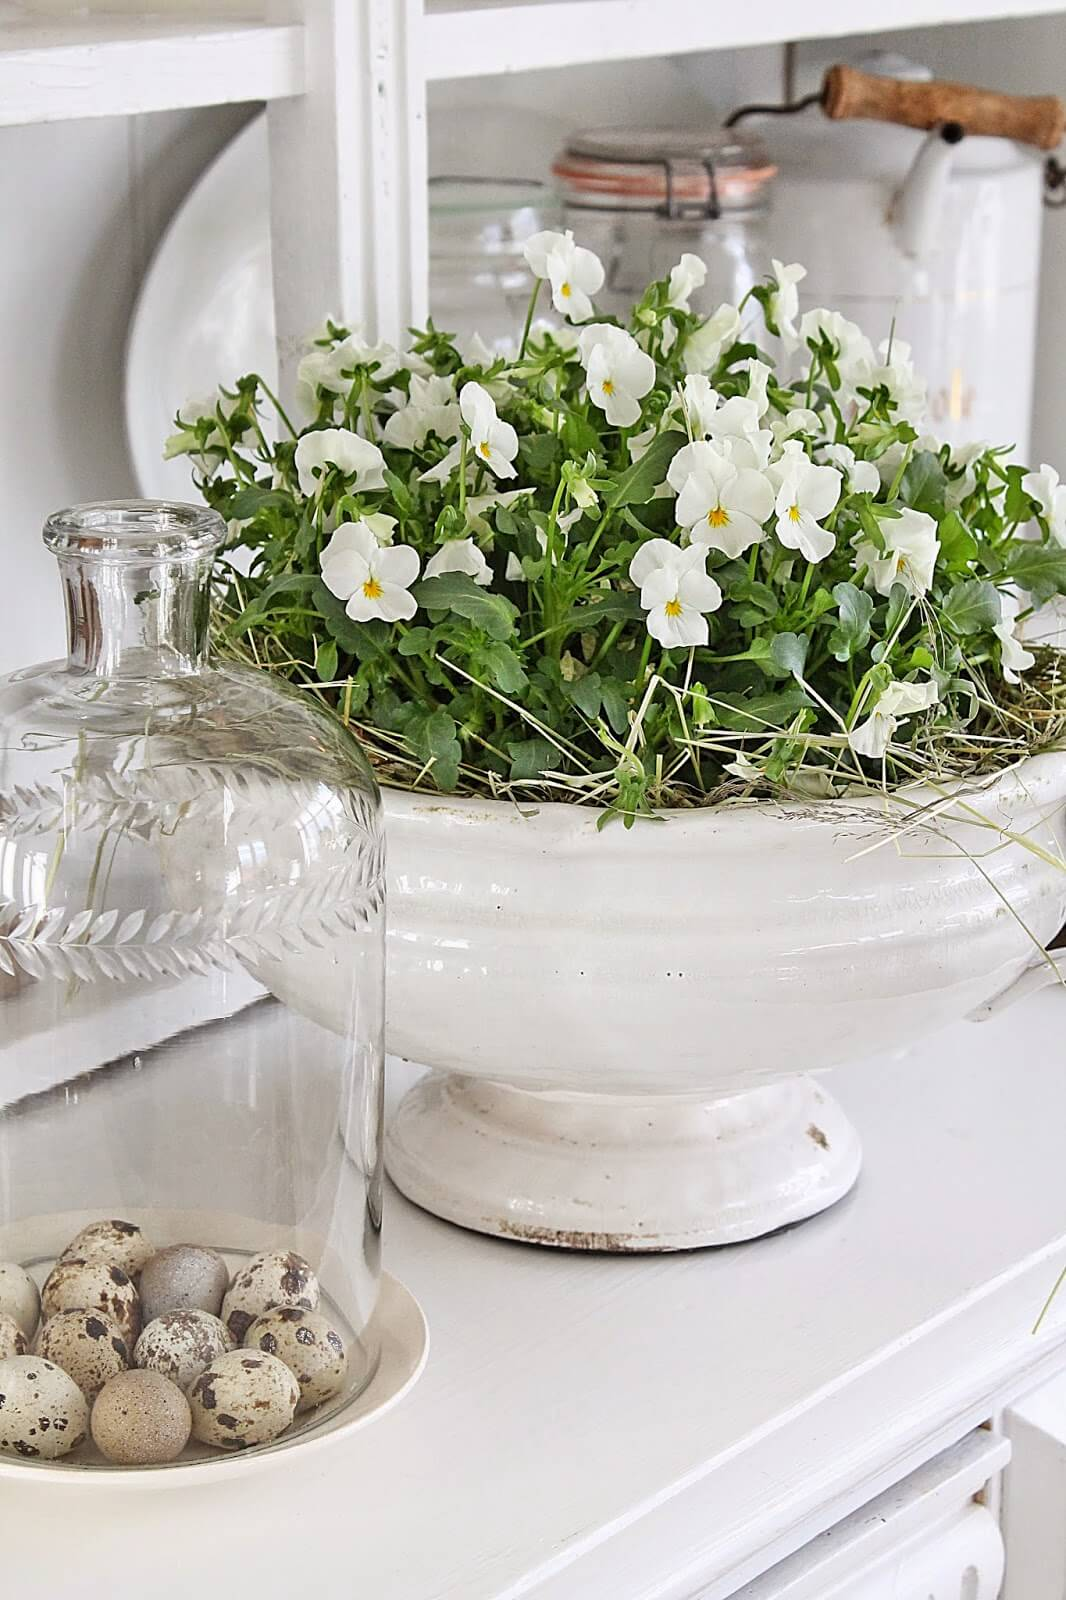 White Violas Planted in Antique Ceramic Dish